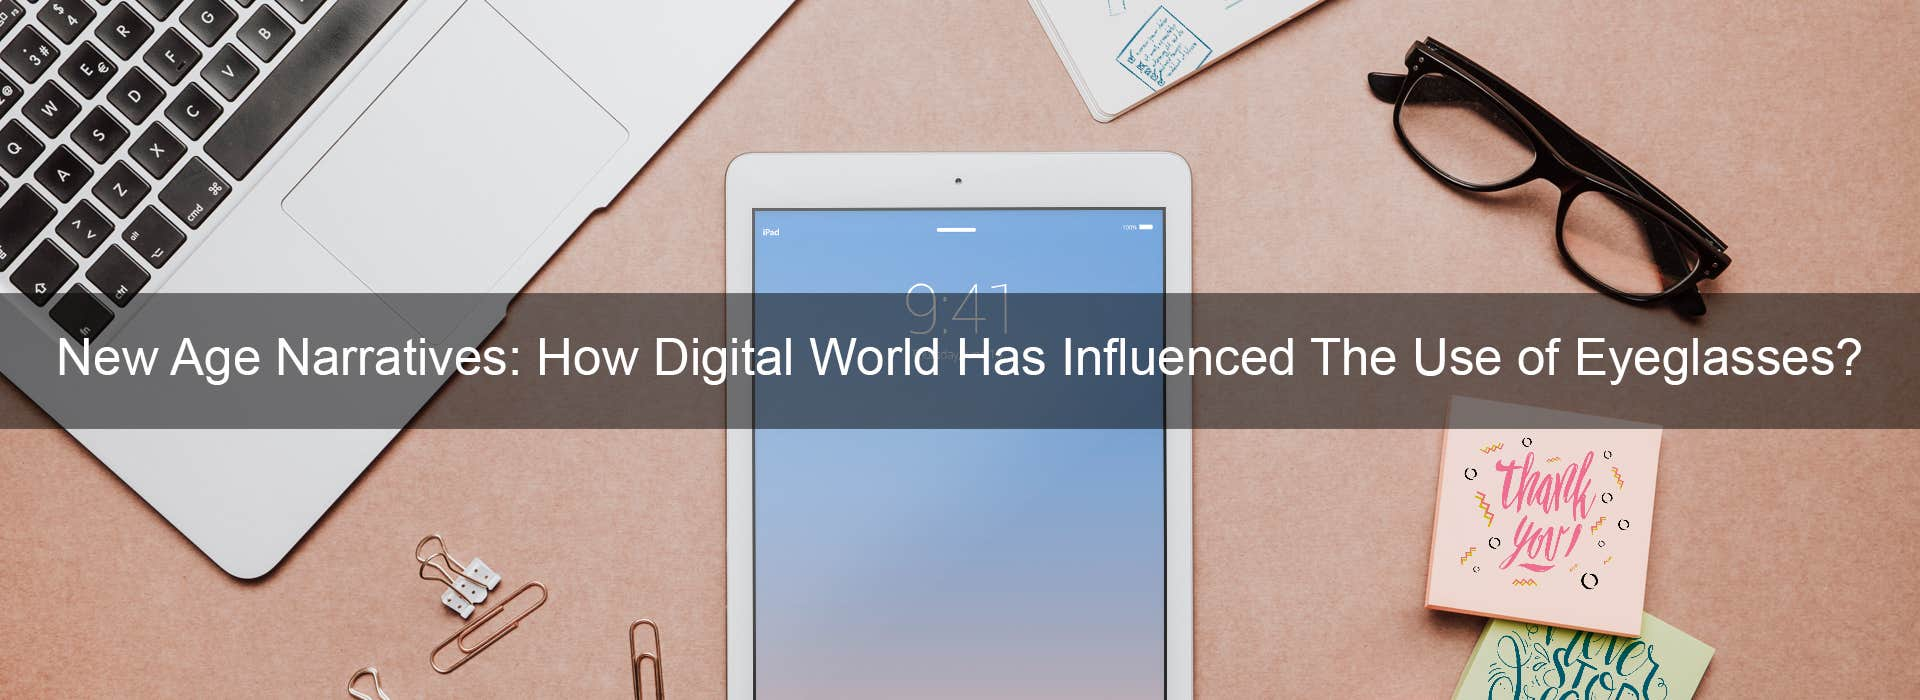 New Age Narratives: How Digital World Has Influenced The Use of Eyeglasses?